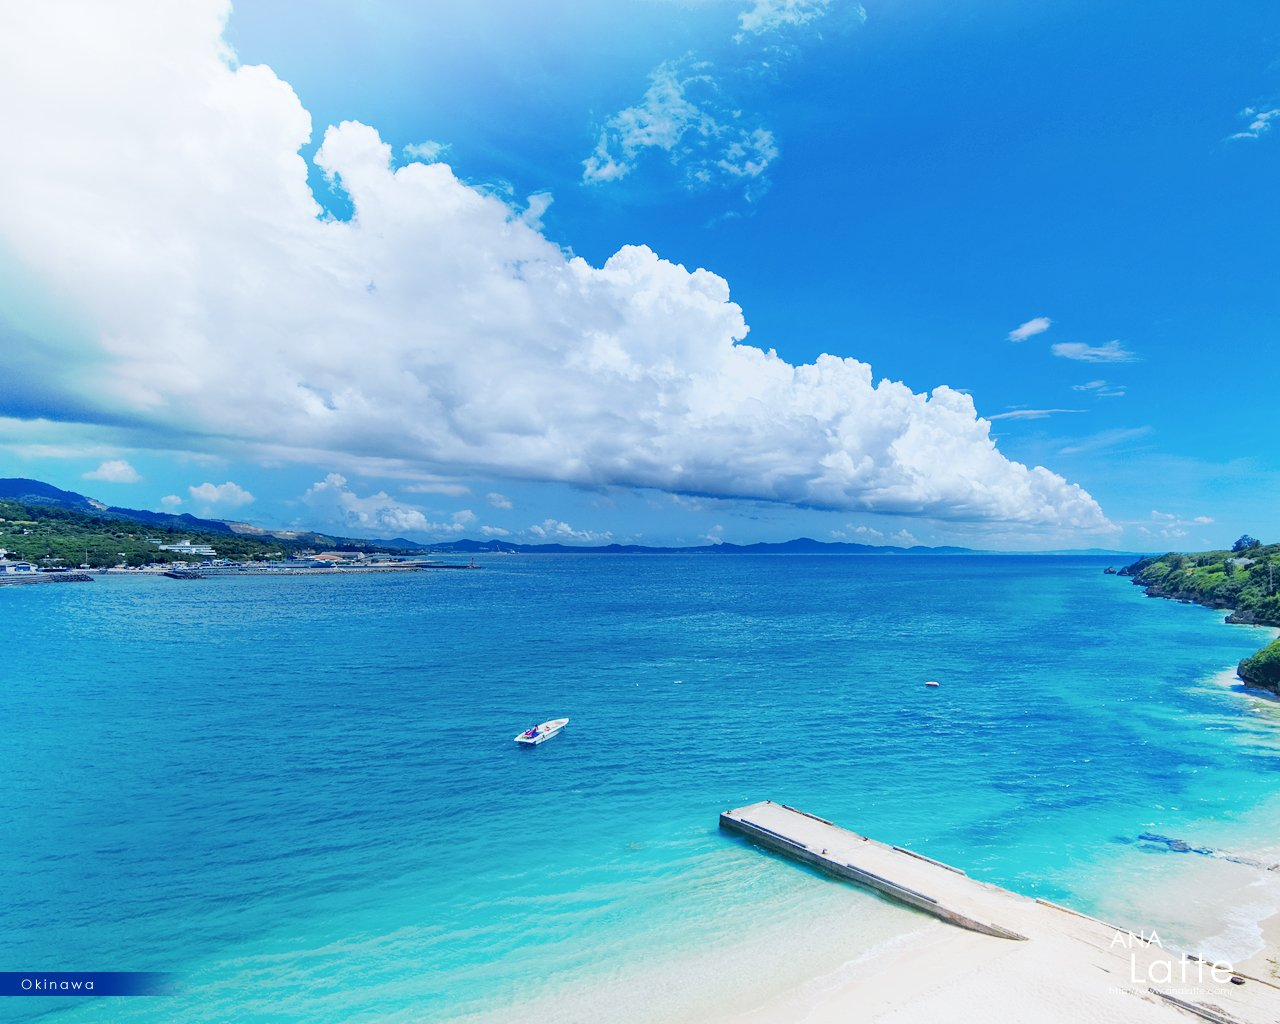 Okinawa Desktop Wallpapers 7312